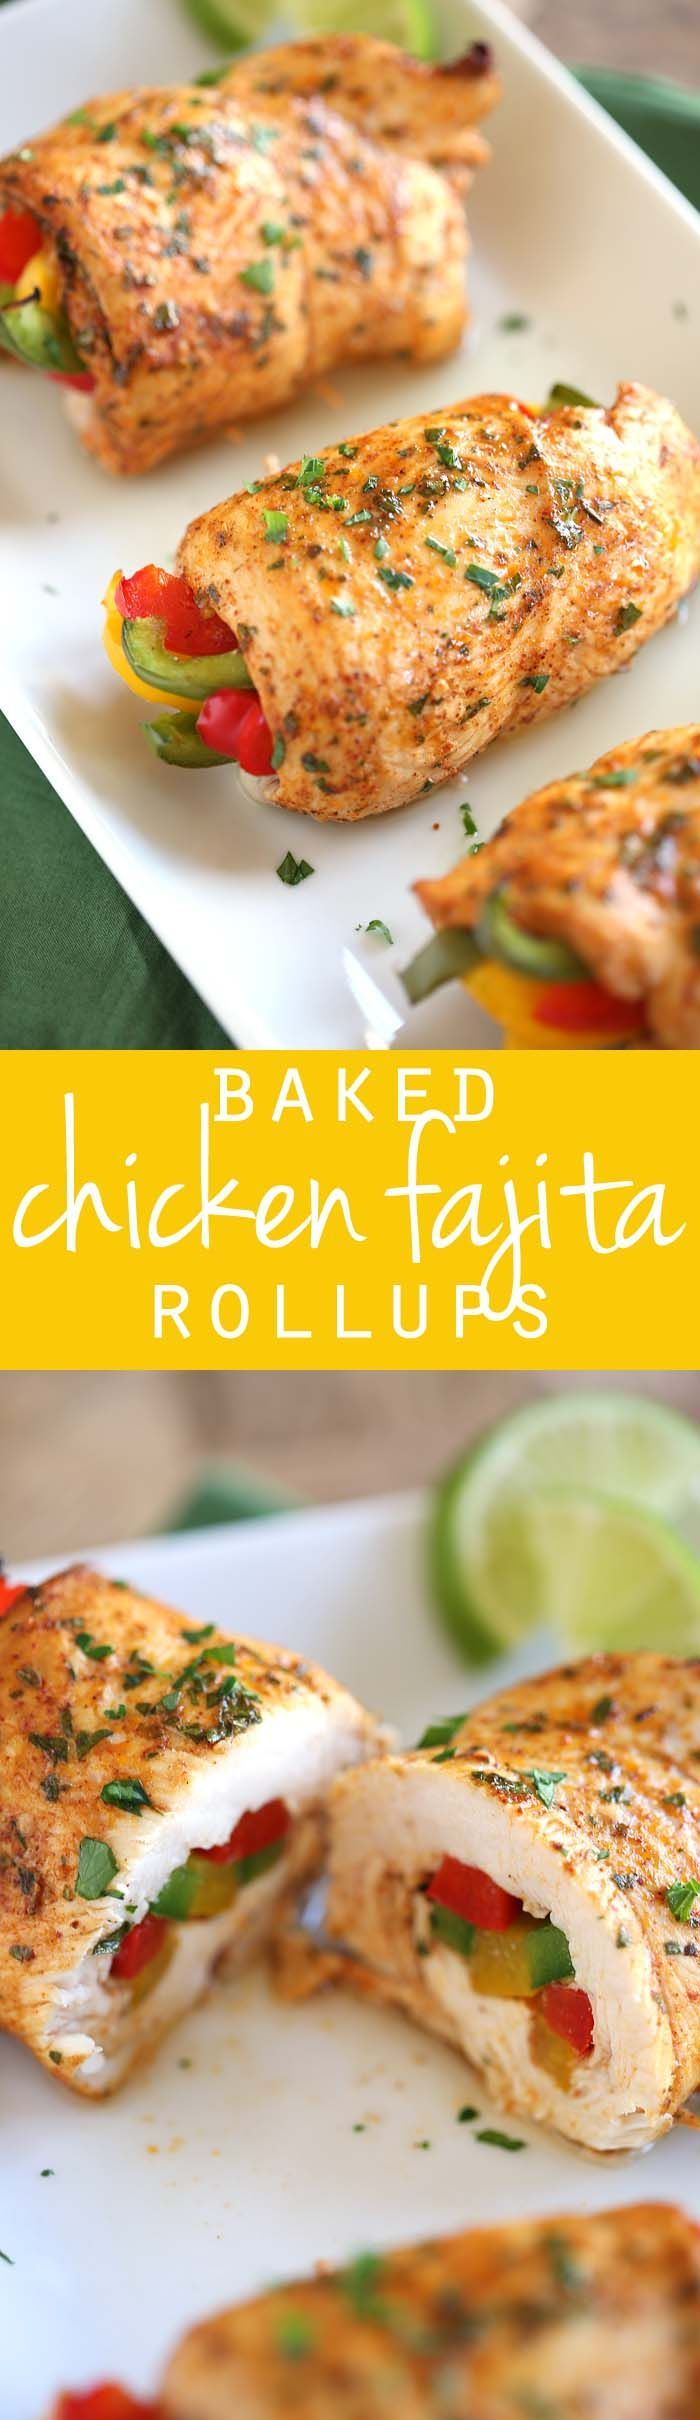 Baked Chicken Fajita Roll-Ups